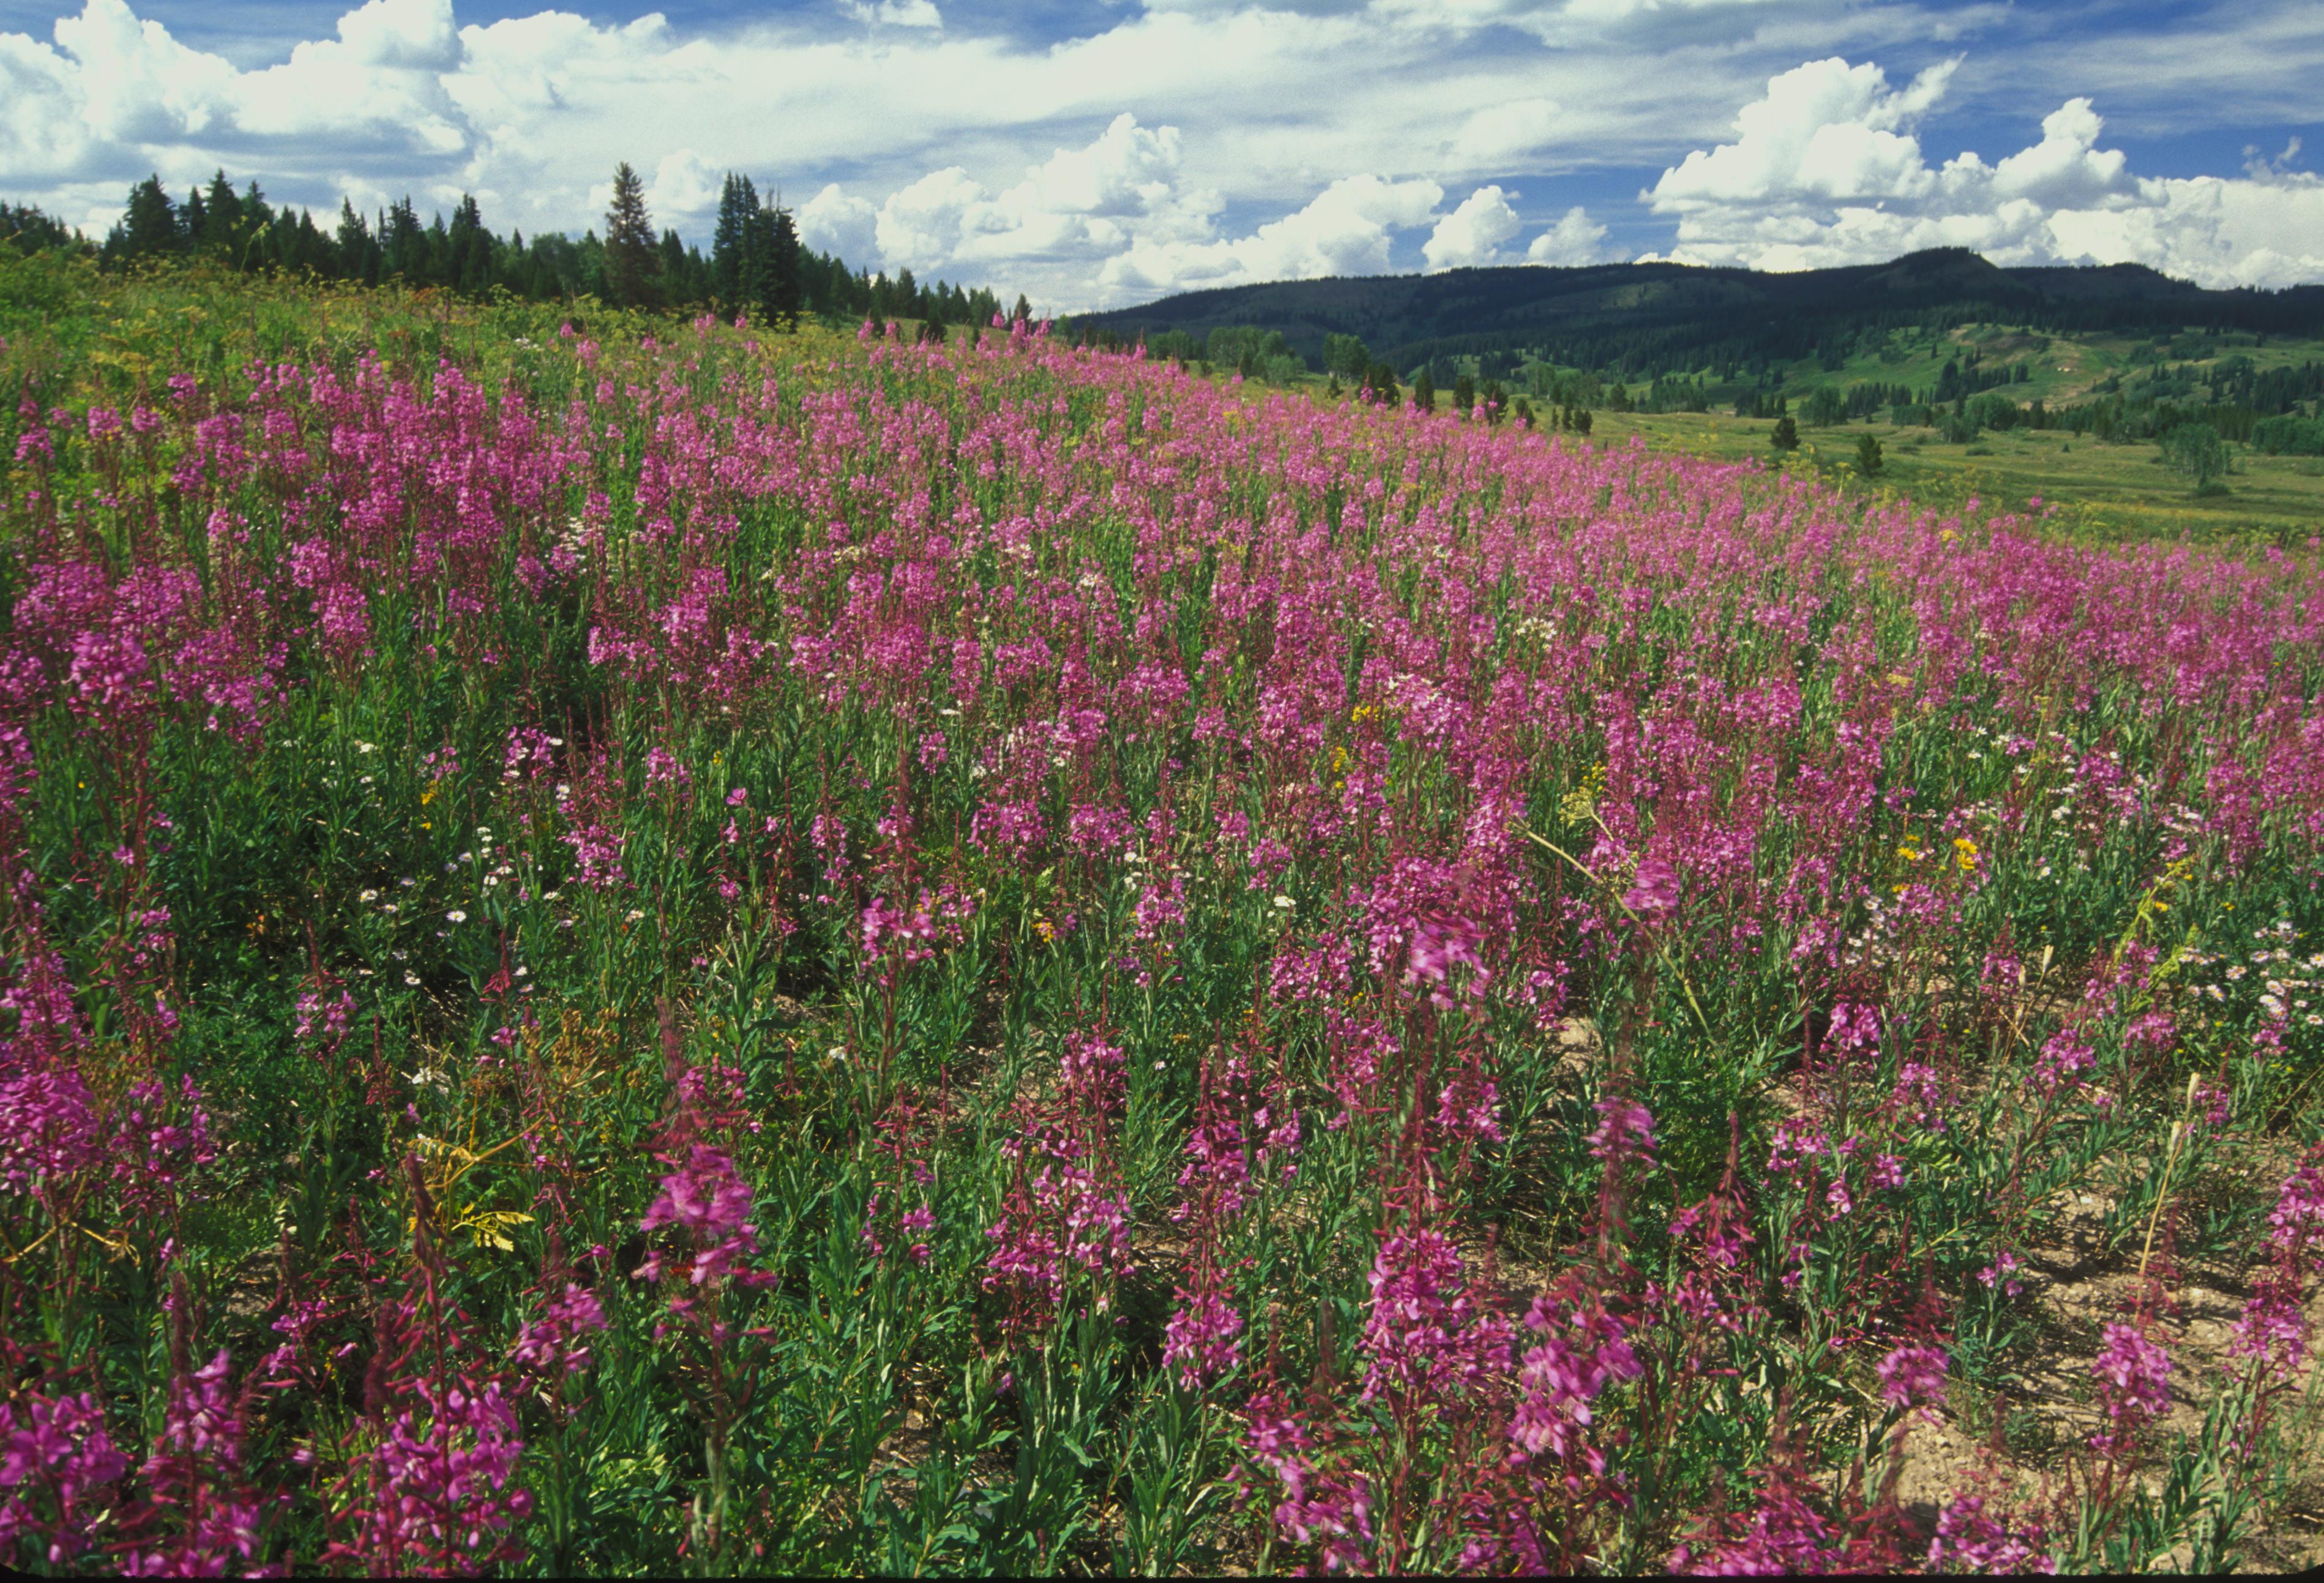 Rabbit Ears Fireweed